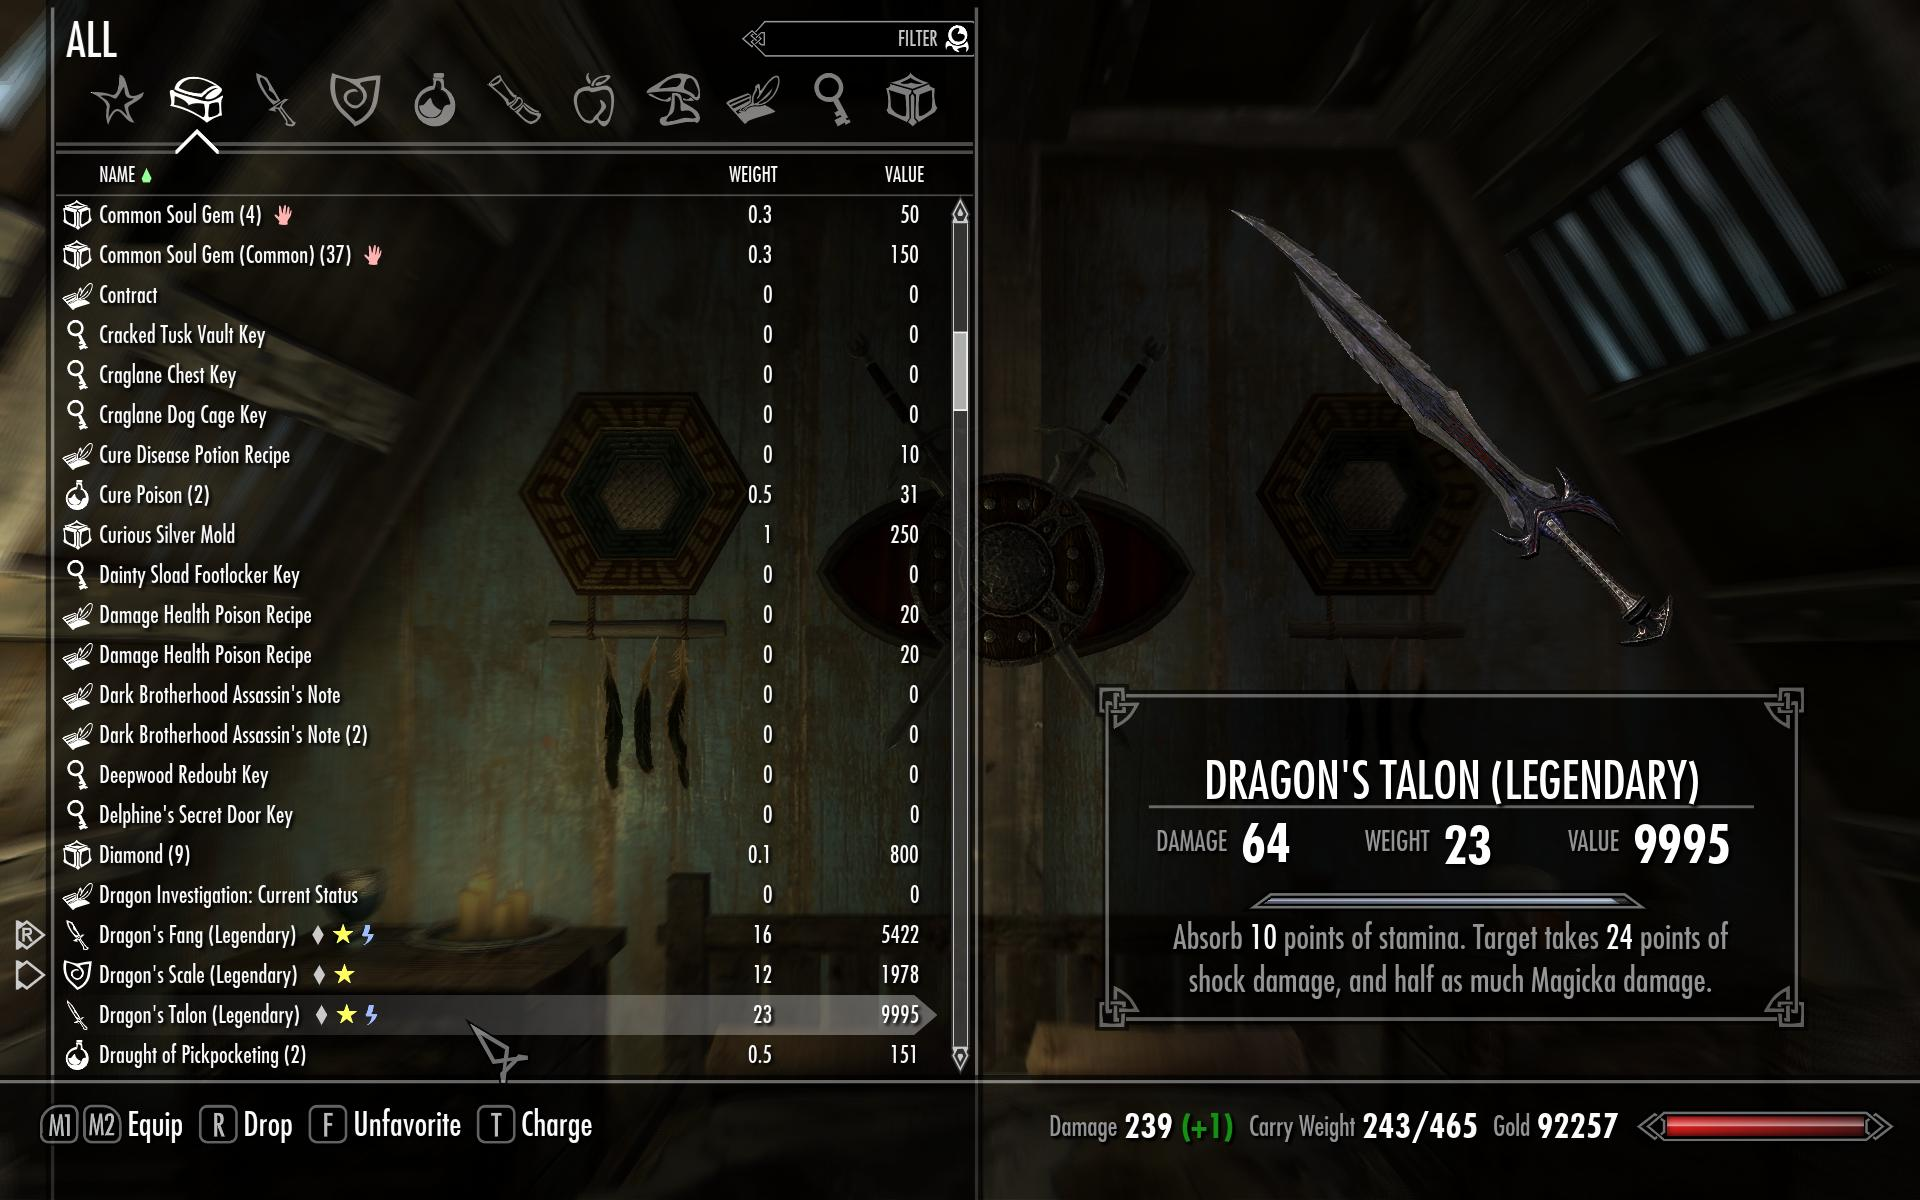 How to Fix Skyrim's Mouse Issues - Page 3 - Overclock net - An